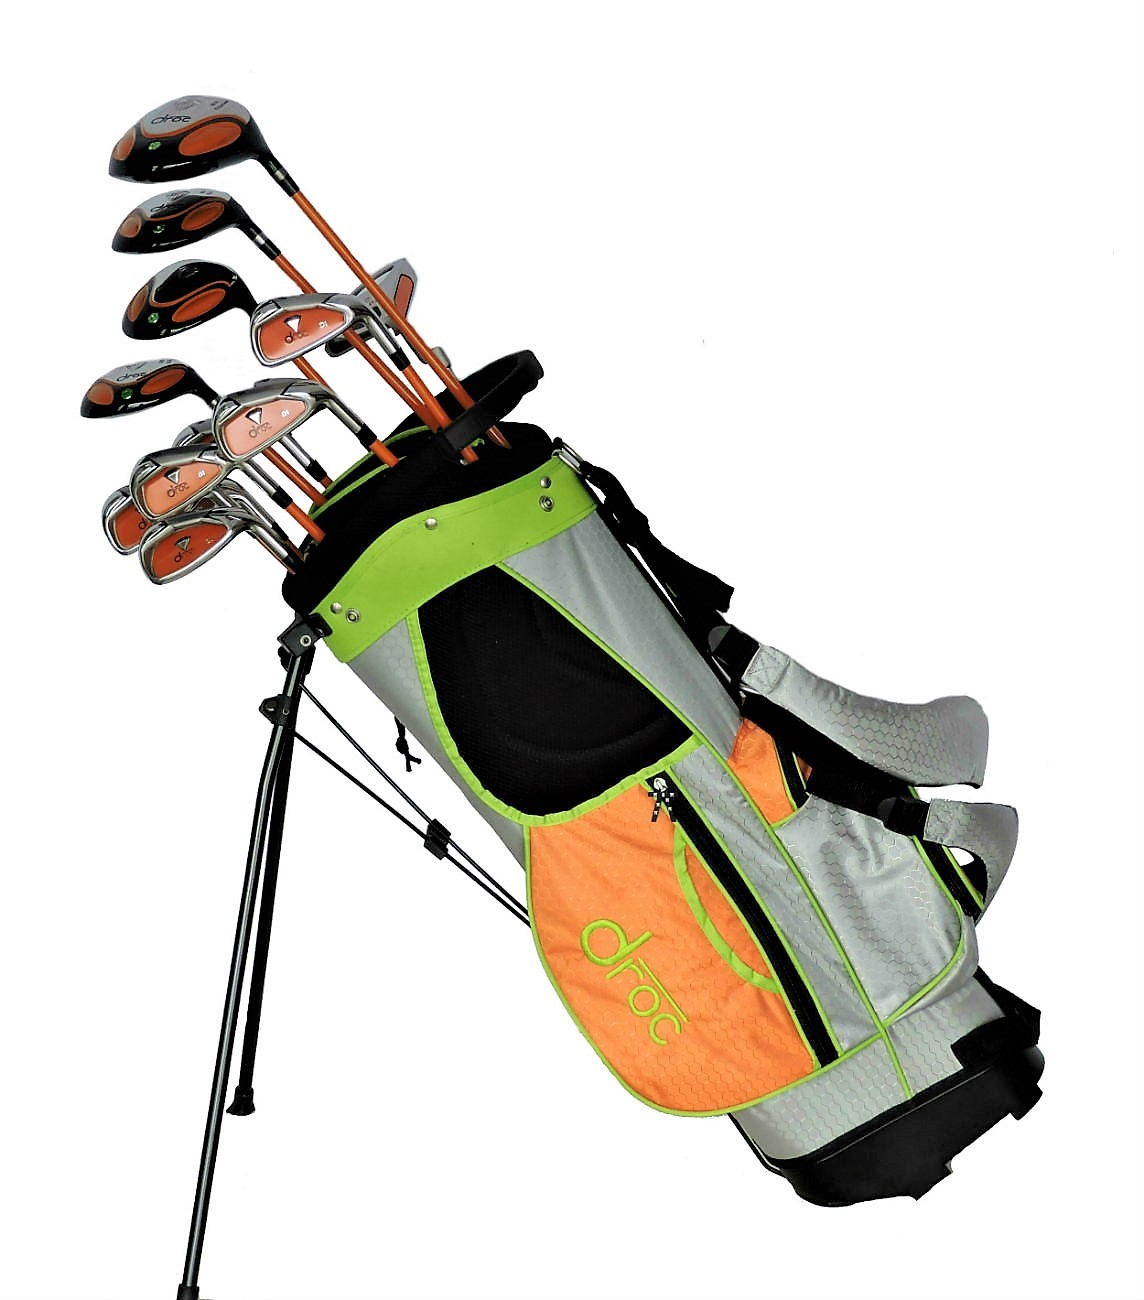 DROC - Dimond Series 13 Pcs Golf Club Set & Golf Bag Age 9 - 12 Right Handed